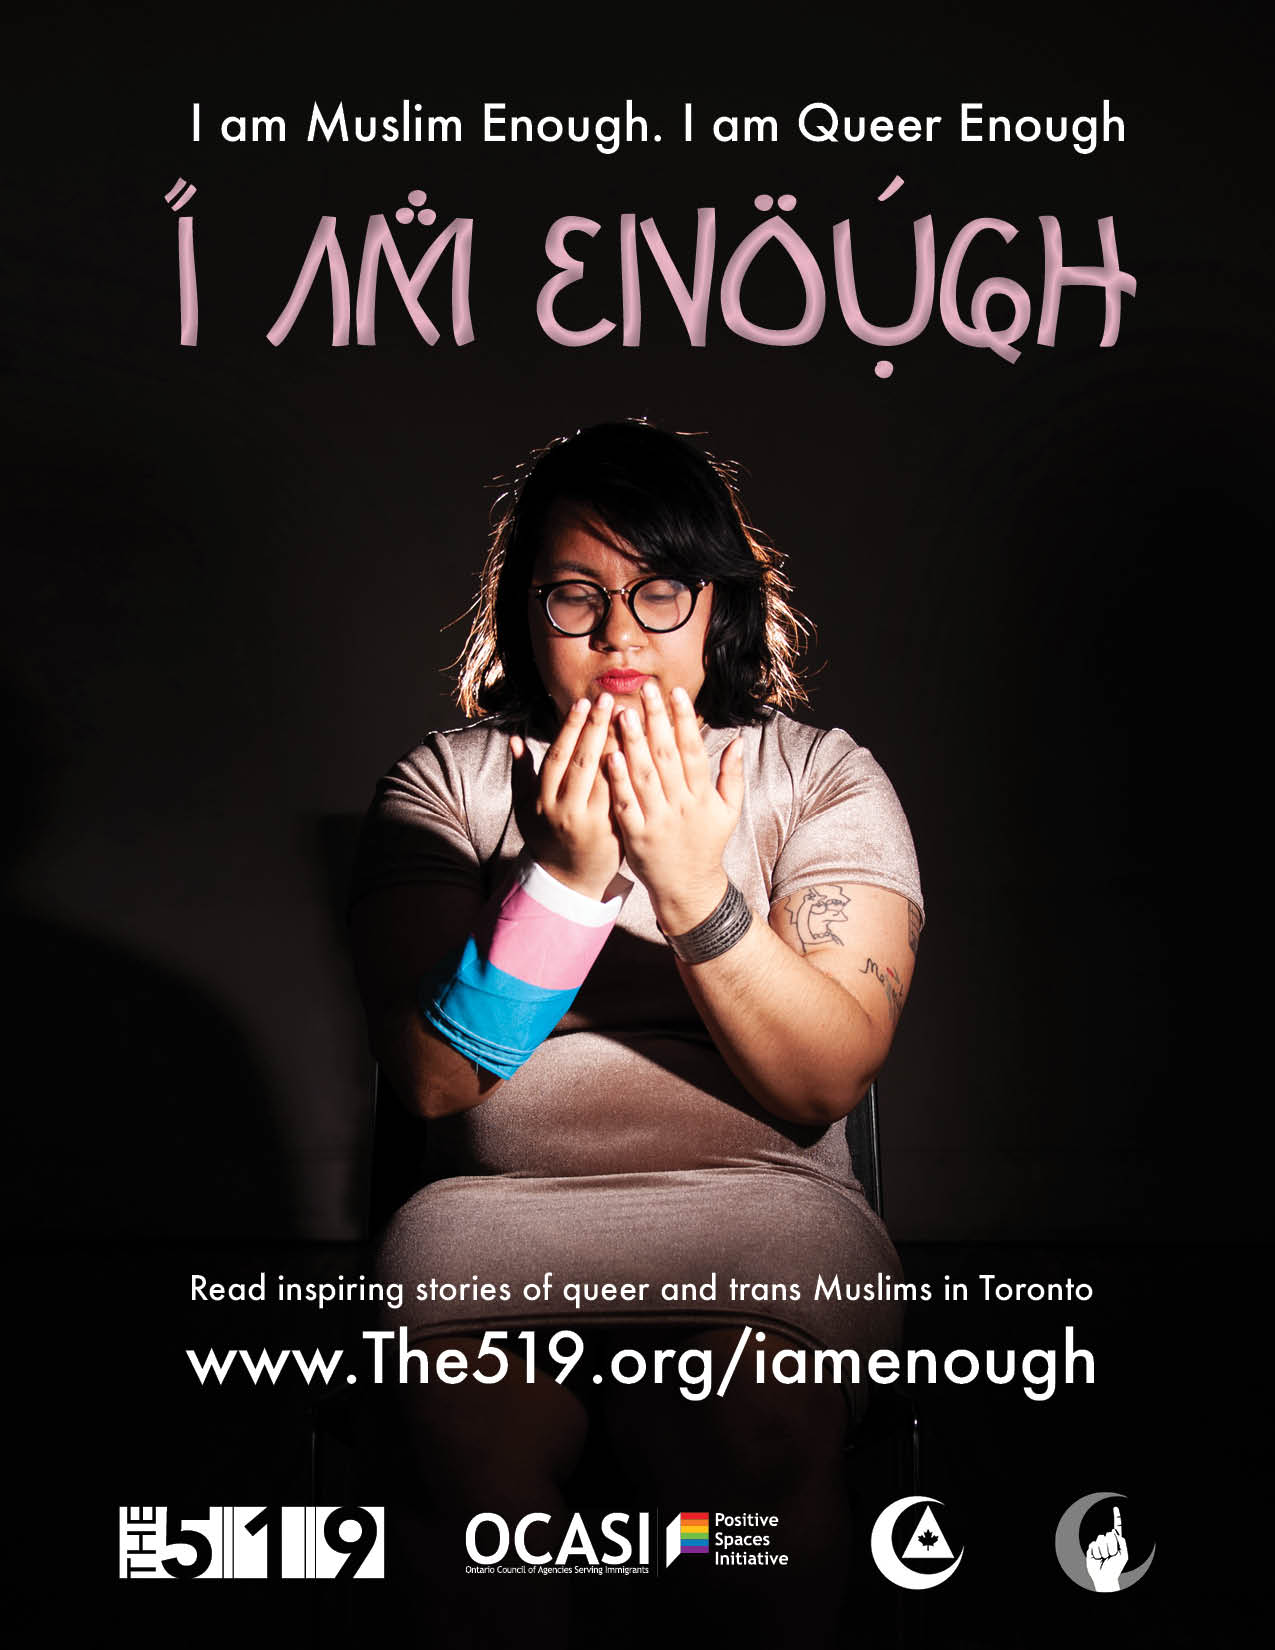 Poster: I am trans enough, I am muslim enough, I am enough. Portrait of a person with the trans flag around their right hand, and a bracelet with a muslim prayer in their left hand.